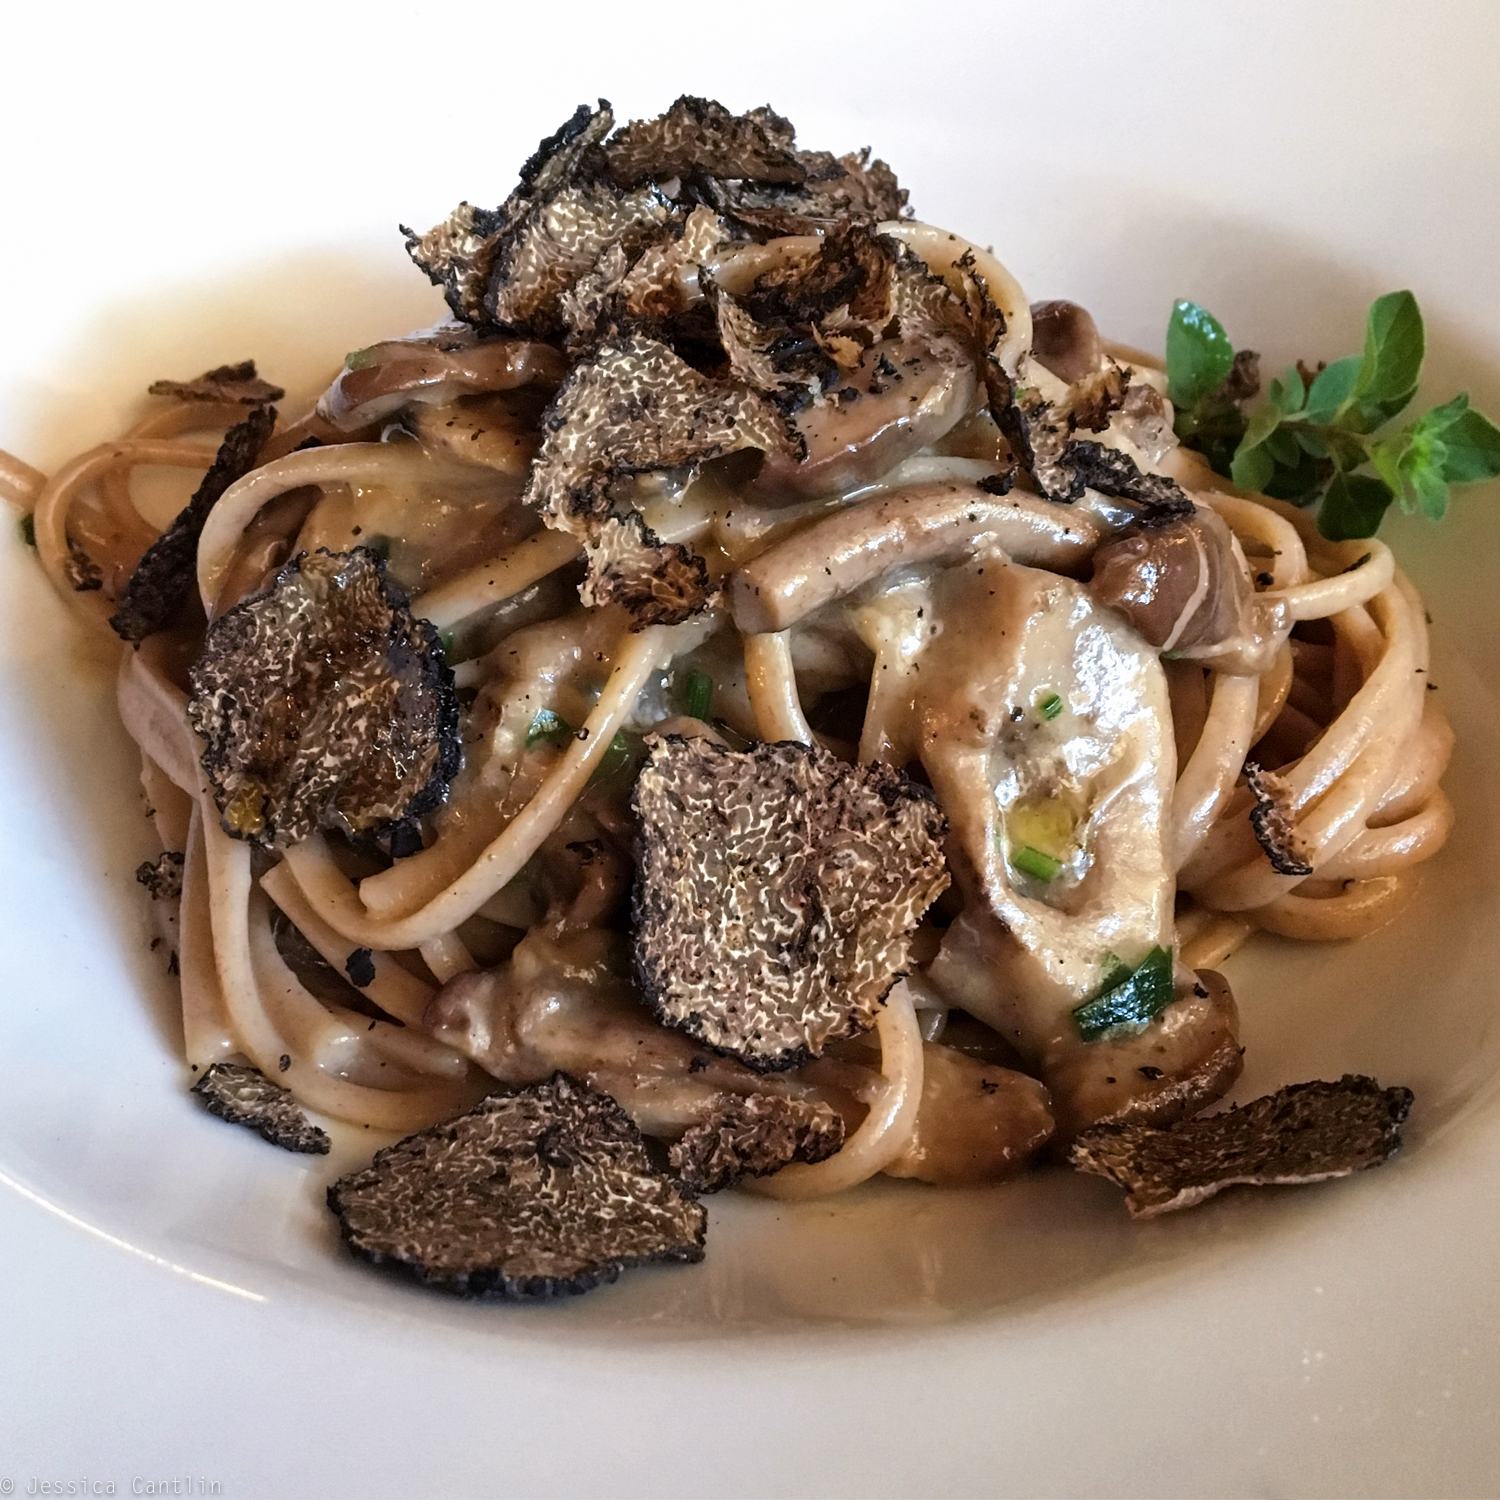 Porcini and Truffles at Al Fogher